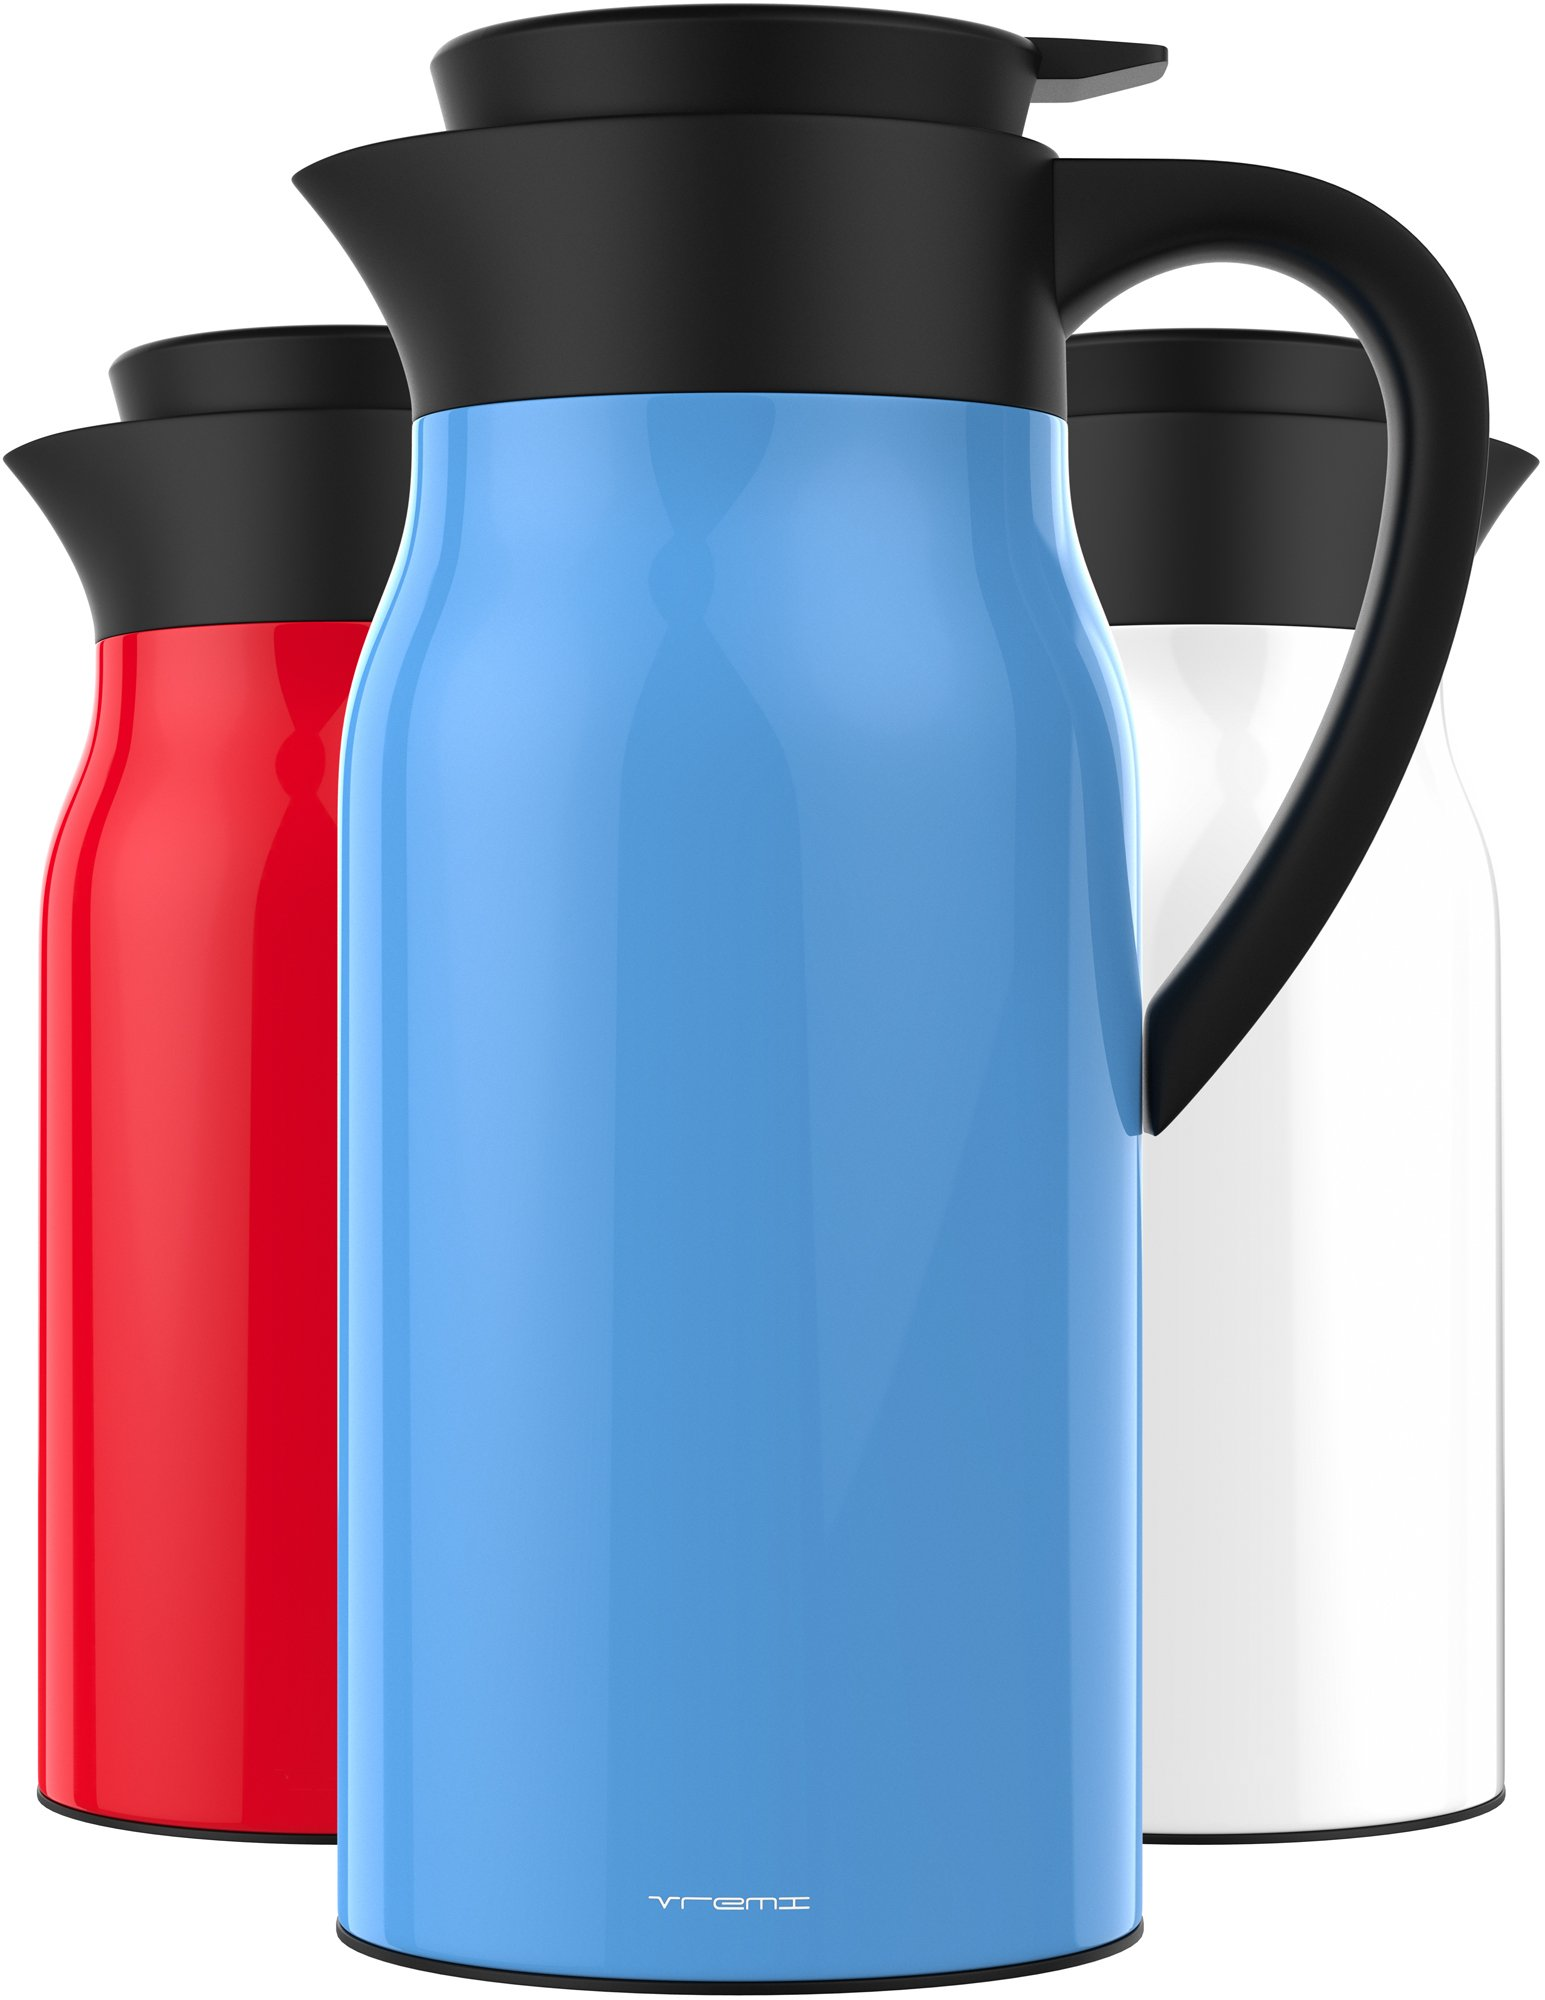 Vremi 51 oz Coffee Carafe - 1.5 liter Tea Thermos Large Travel Bottle Stainless Steel Vacuum Insulated with Leak Proof Lid - Thermal Carafe Hot Drink Carrier Container with Heat Cold Retention - Blue